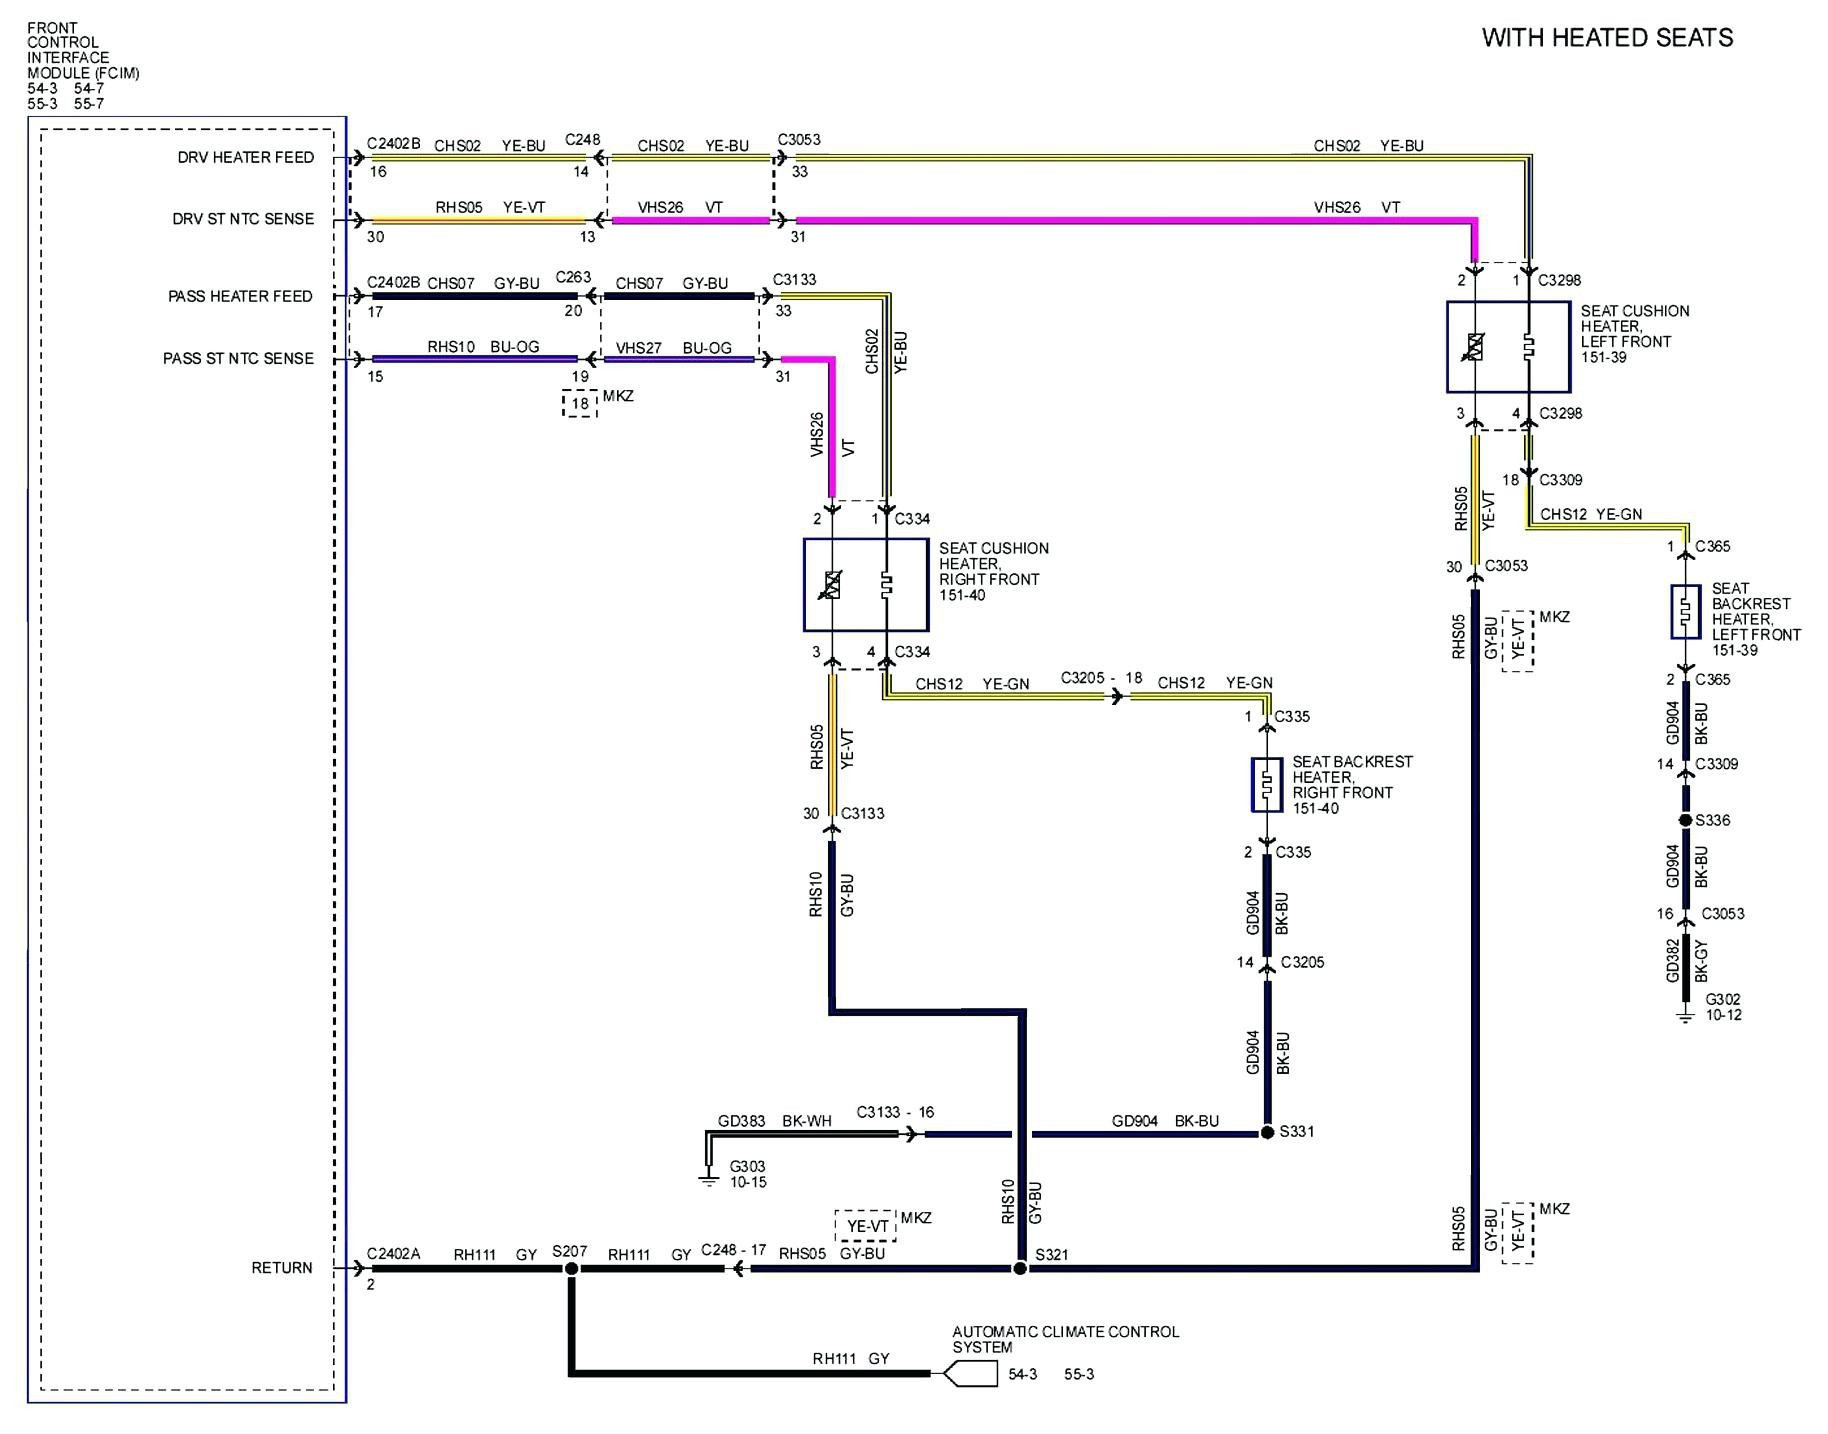 Pac Sni 15 Wiring Diagram | Wiring Diagram - Pac Sni 15 Wiring Diagram